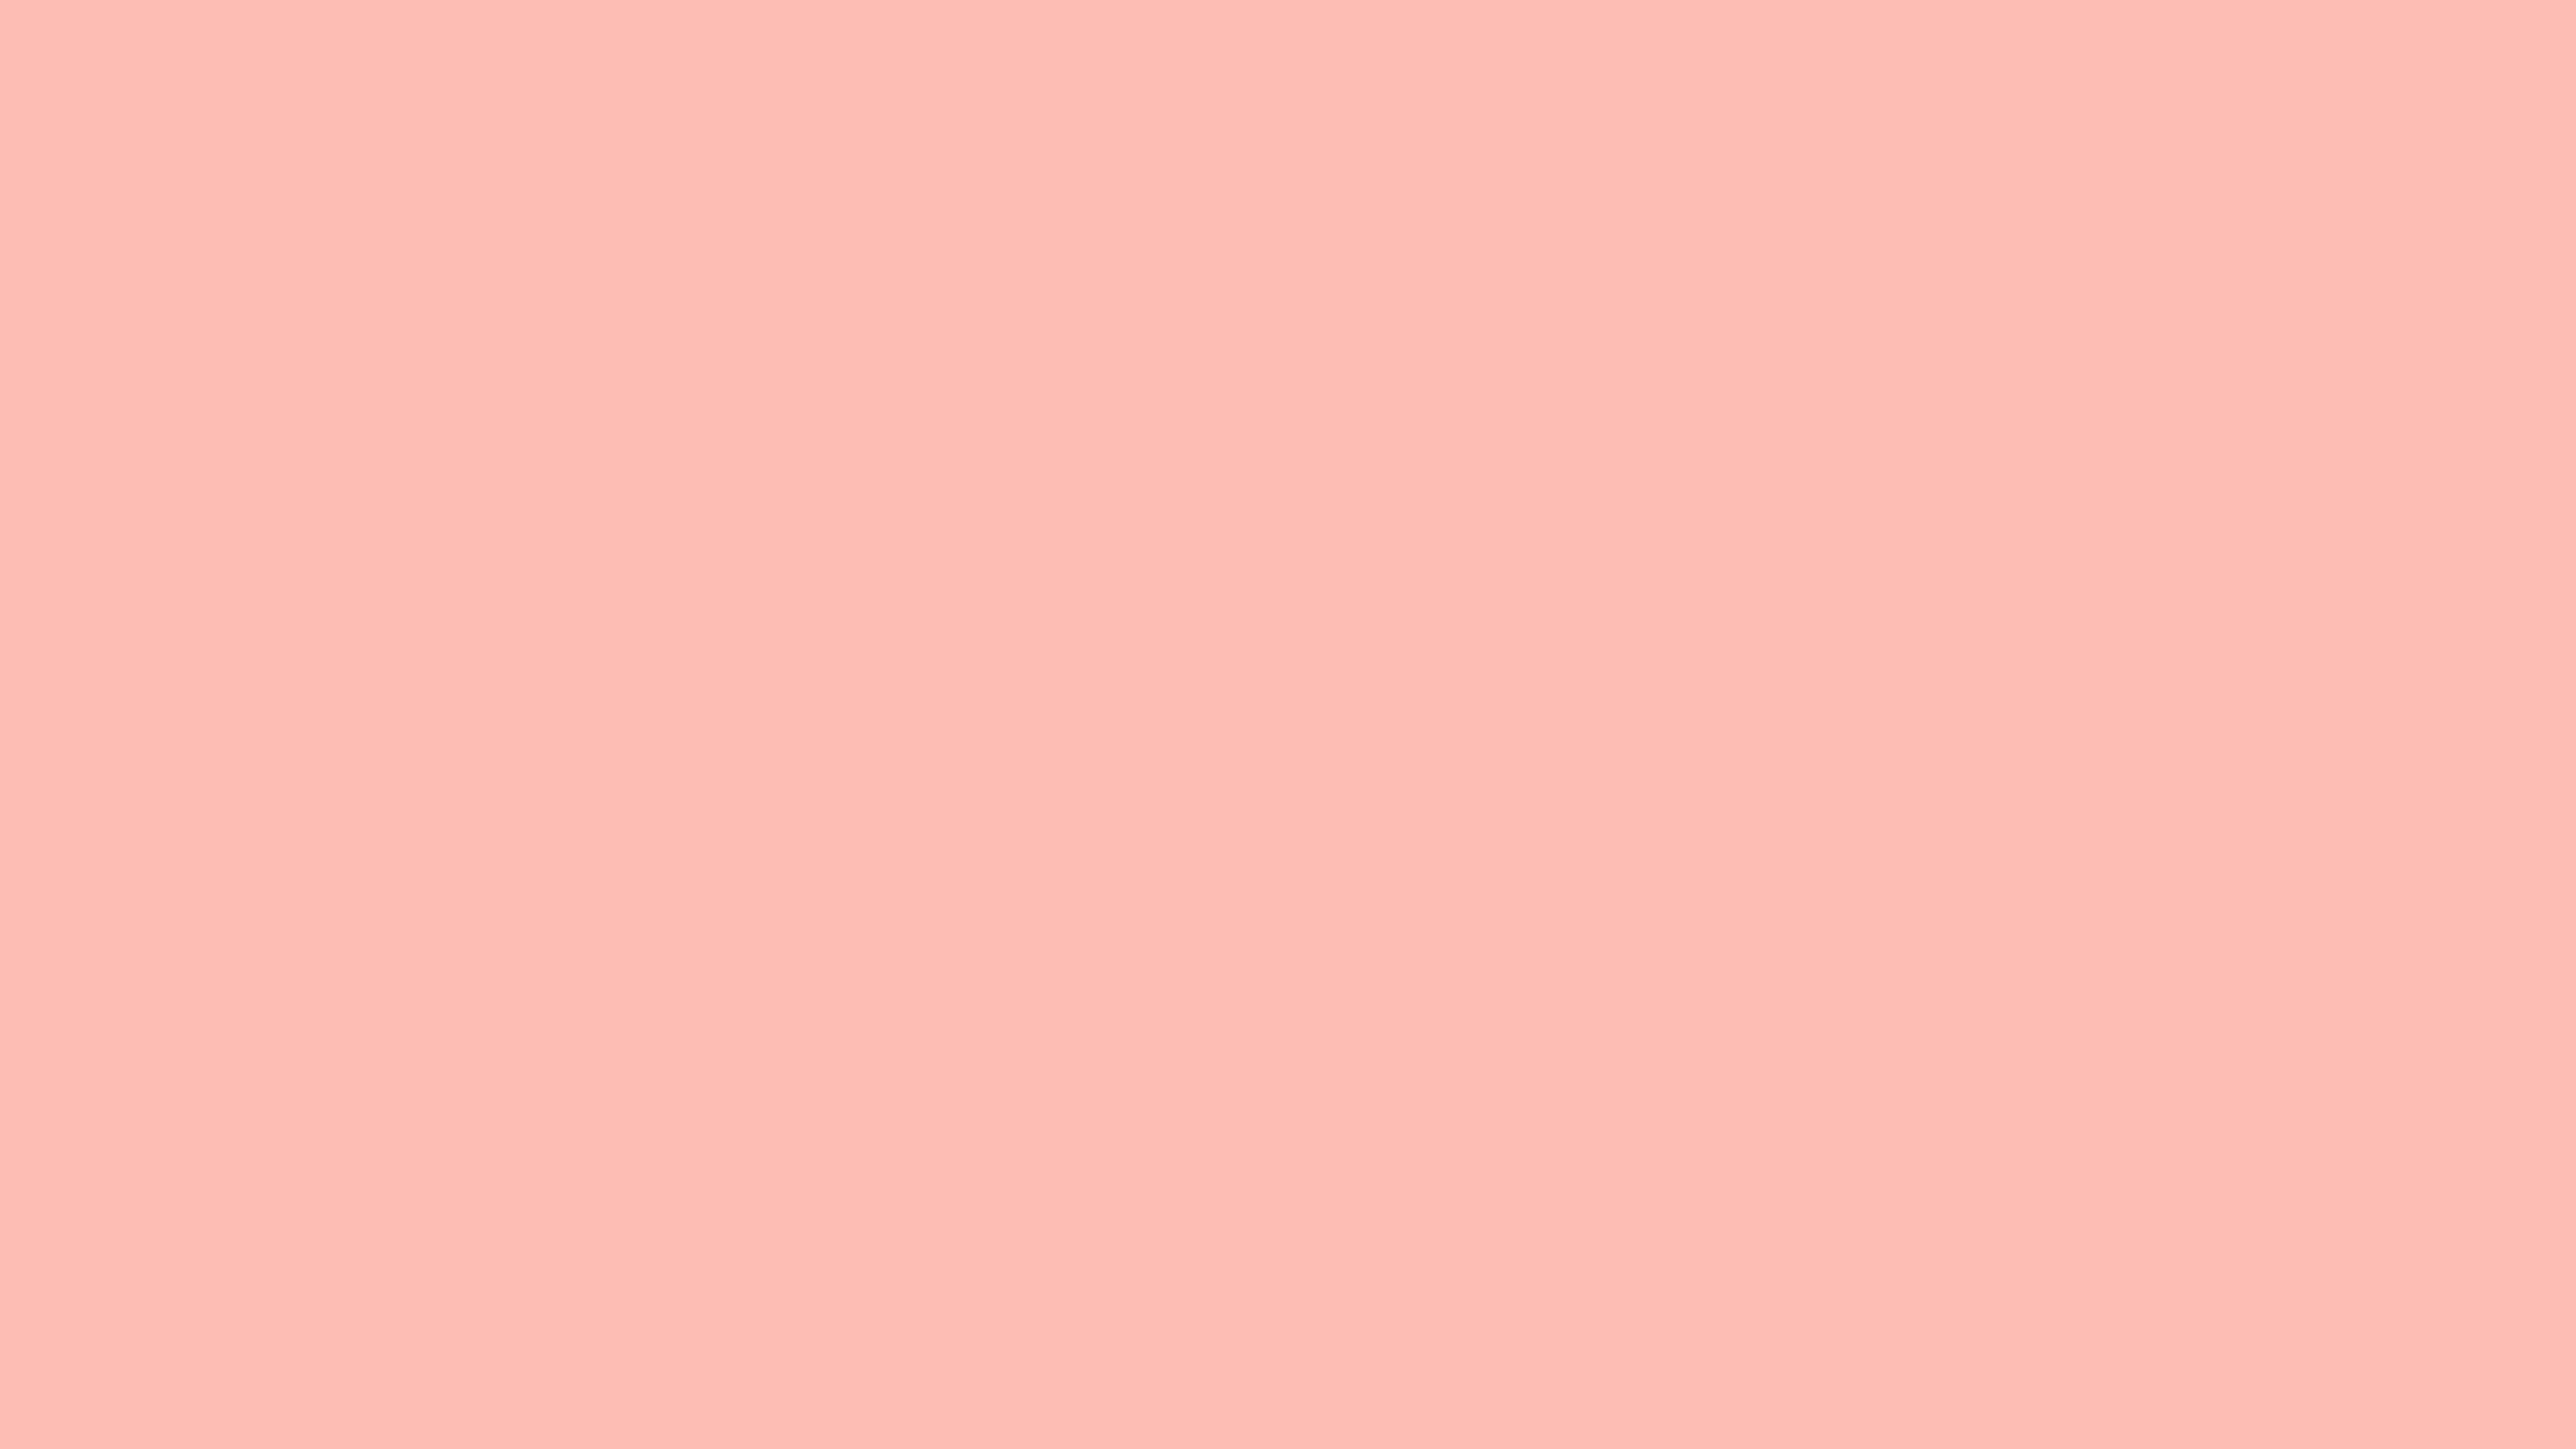 3840x2160 Melon Solid Color Background